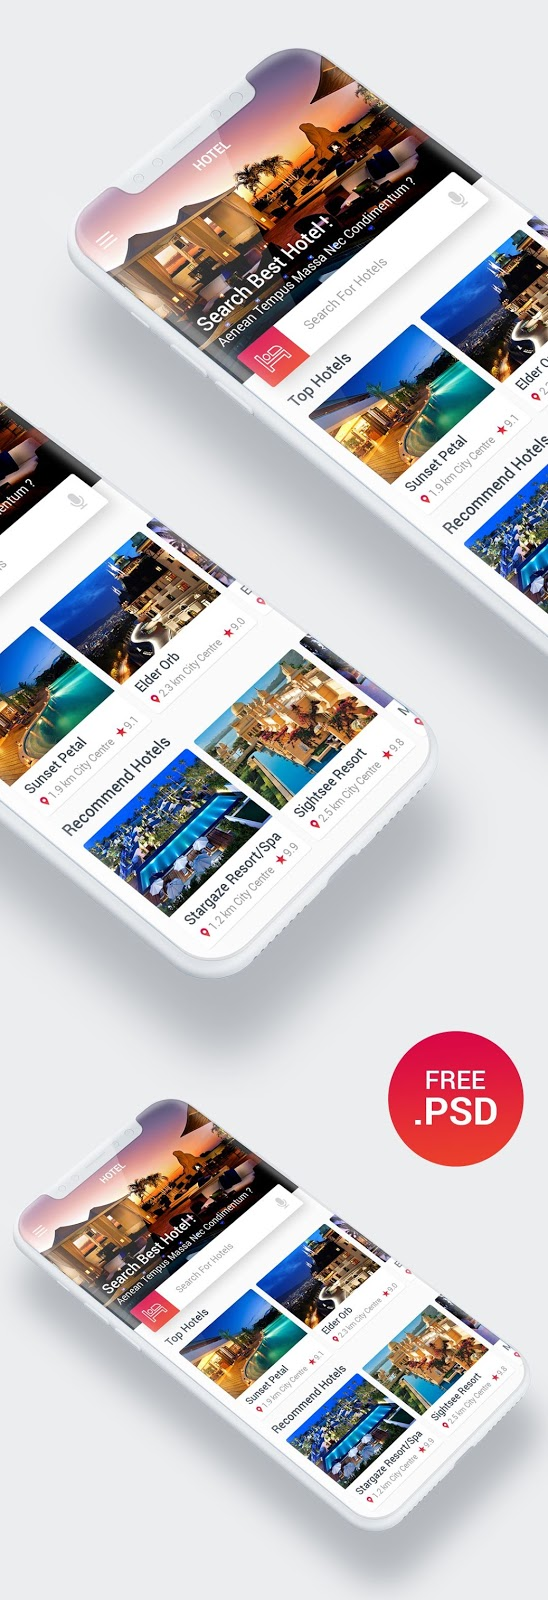 Hotel Search App UI Design For Inspiration